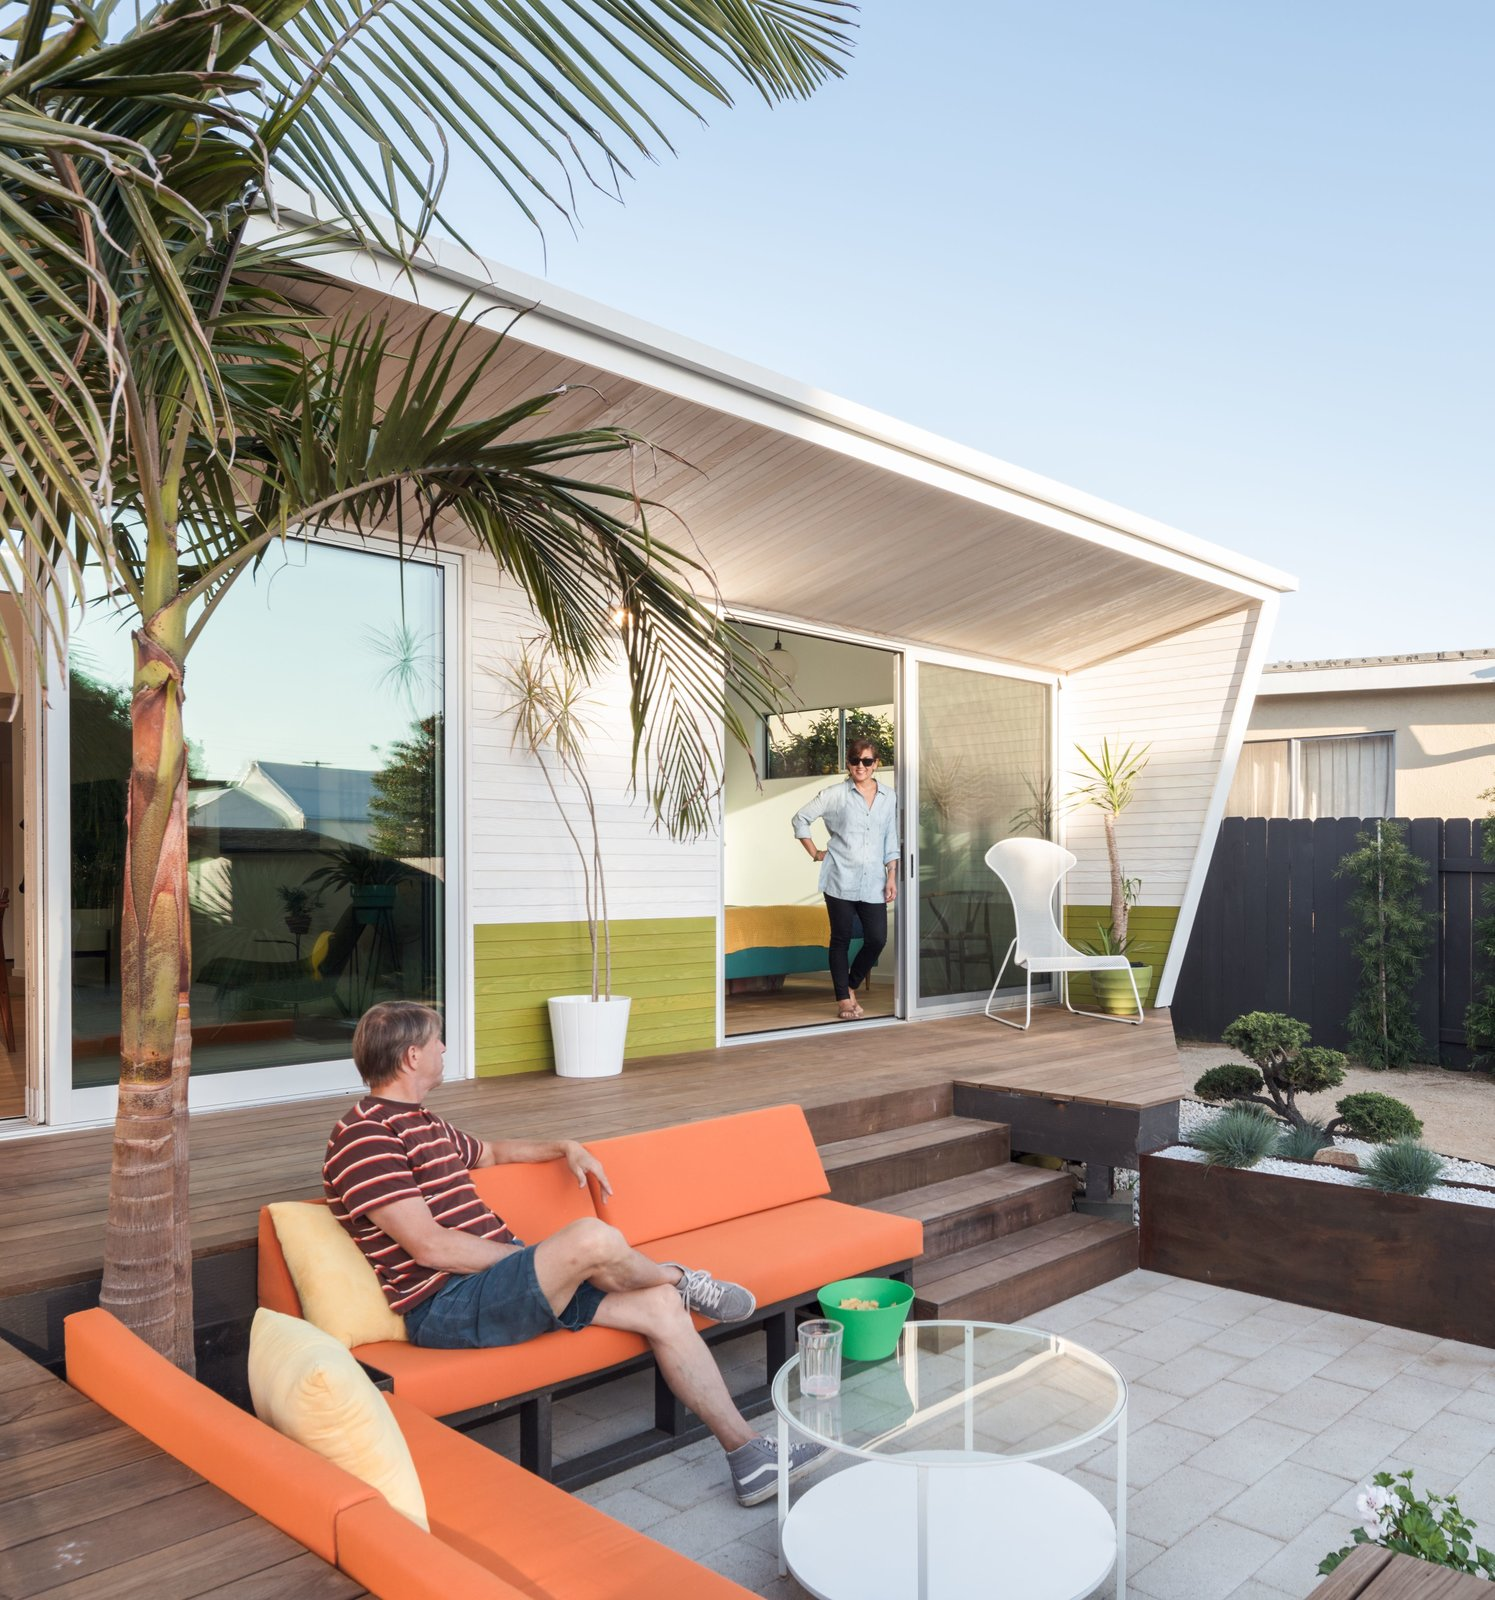 corten steel planter + Bonsai garden Tagged: Outdoor, Back Yard, Trees, Raised Planters, Wood Patio, Porch, Deck, Vertical Fences, Wall, and Wood Fences, Wall.  The Beach Lab by Surfside Projects